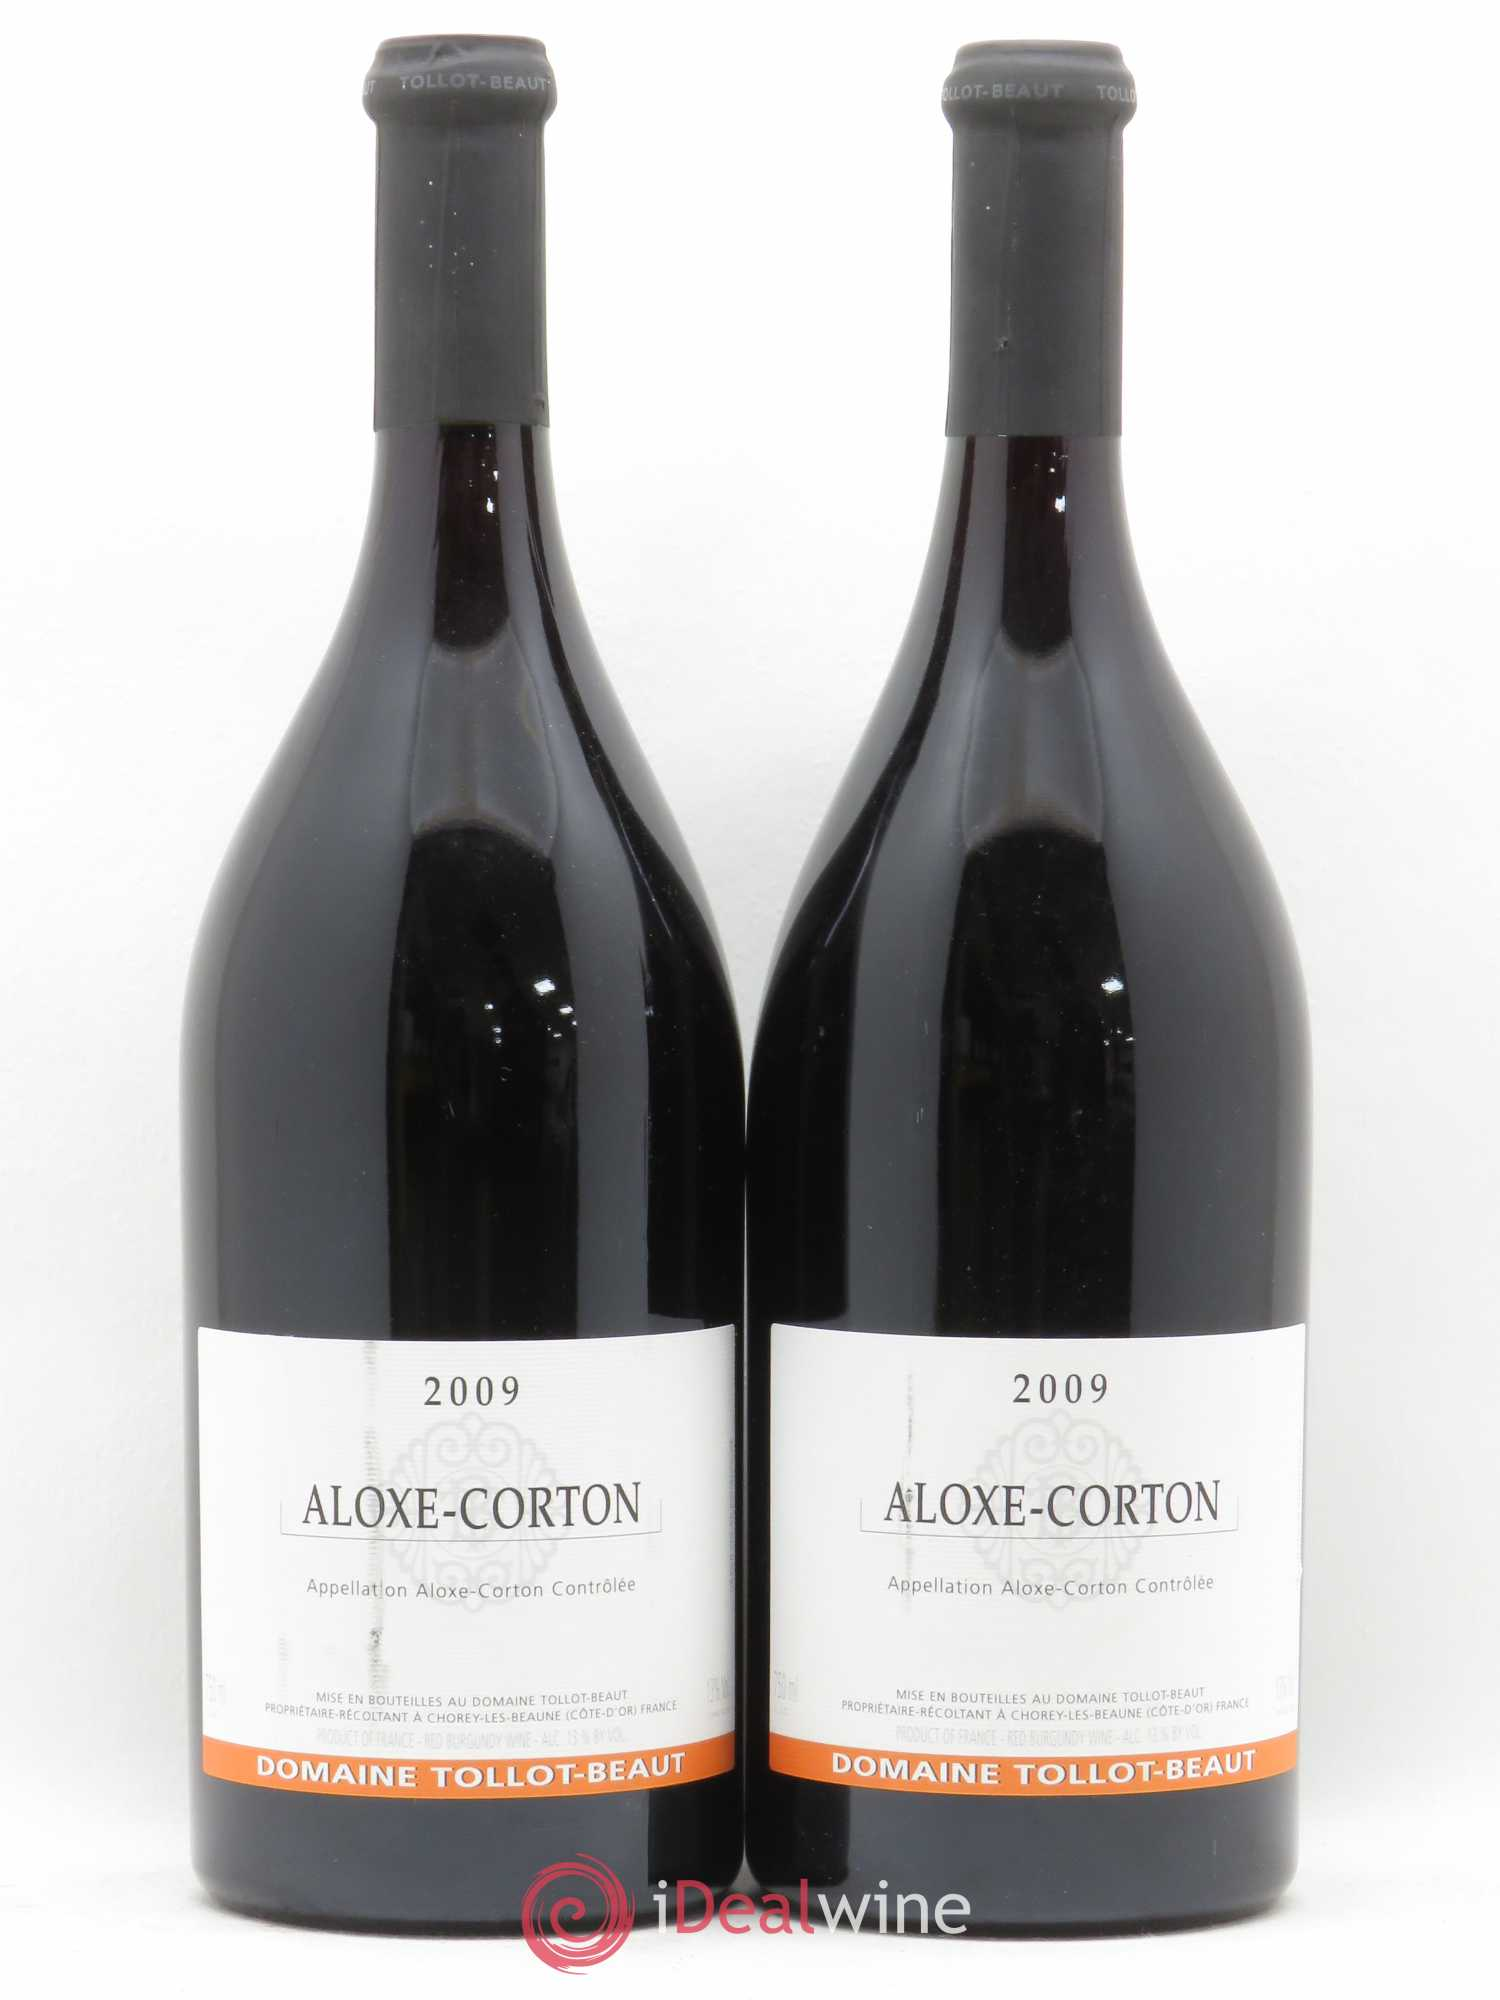 Aloxe-Corton Tollot Beaut (Domaine)  2009 - Lot of 2 Bottles